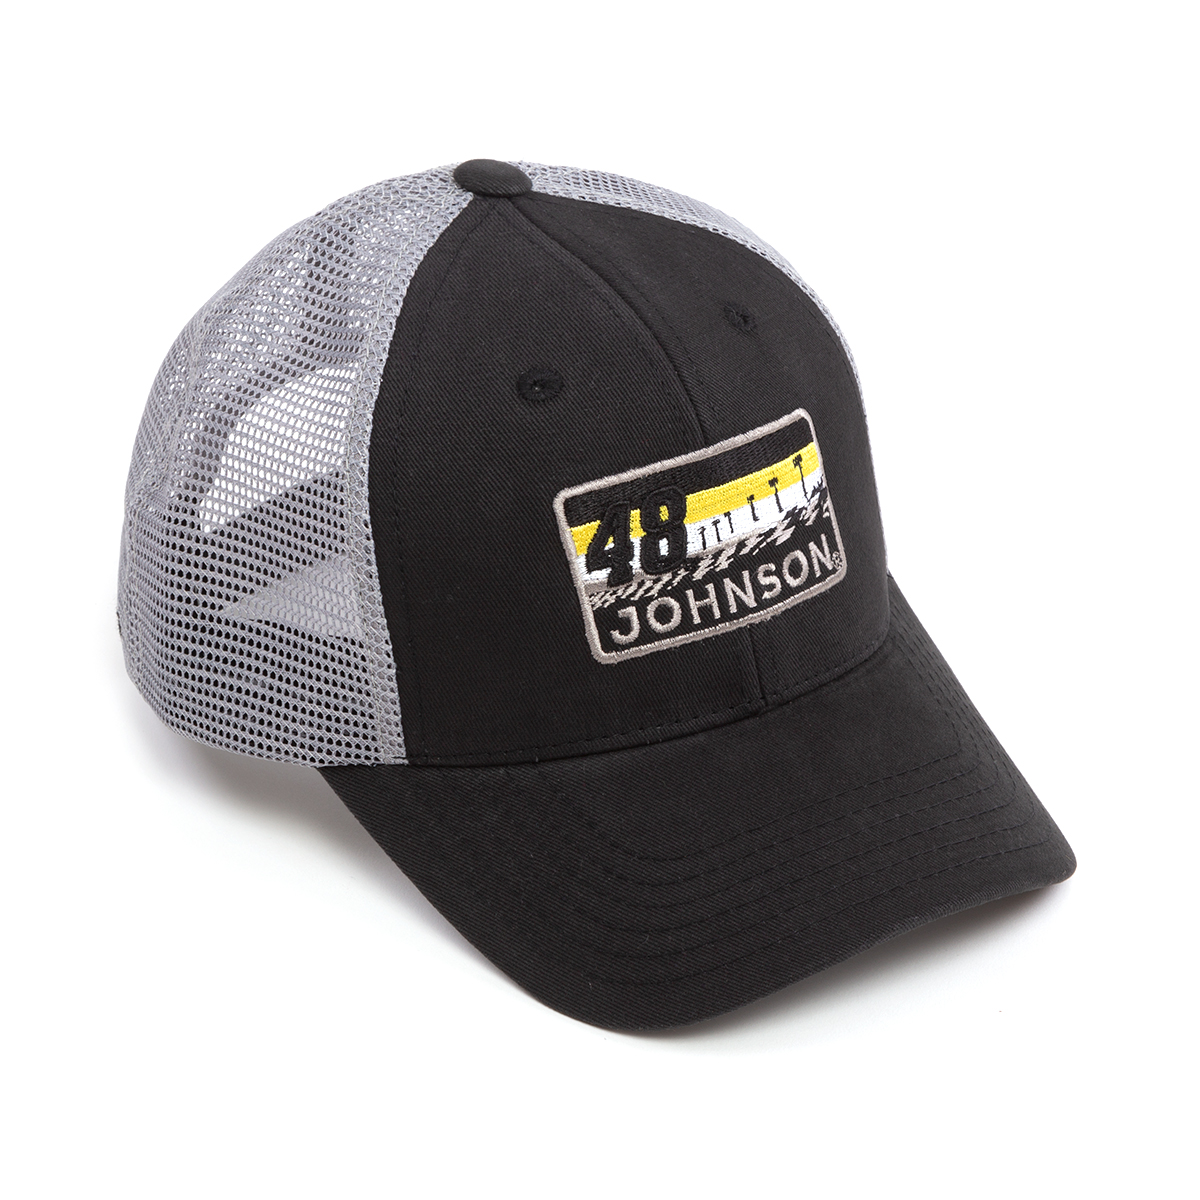 Jimmie Johnson NASCAR Grandstand Hat